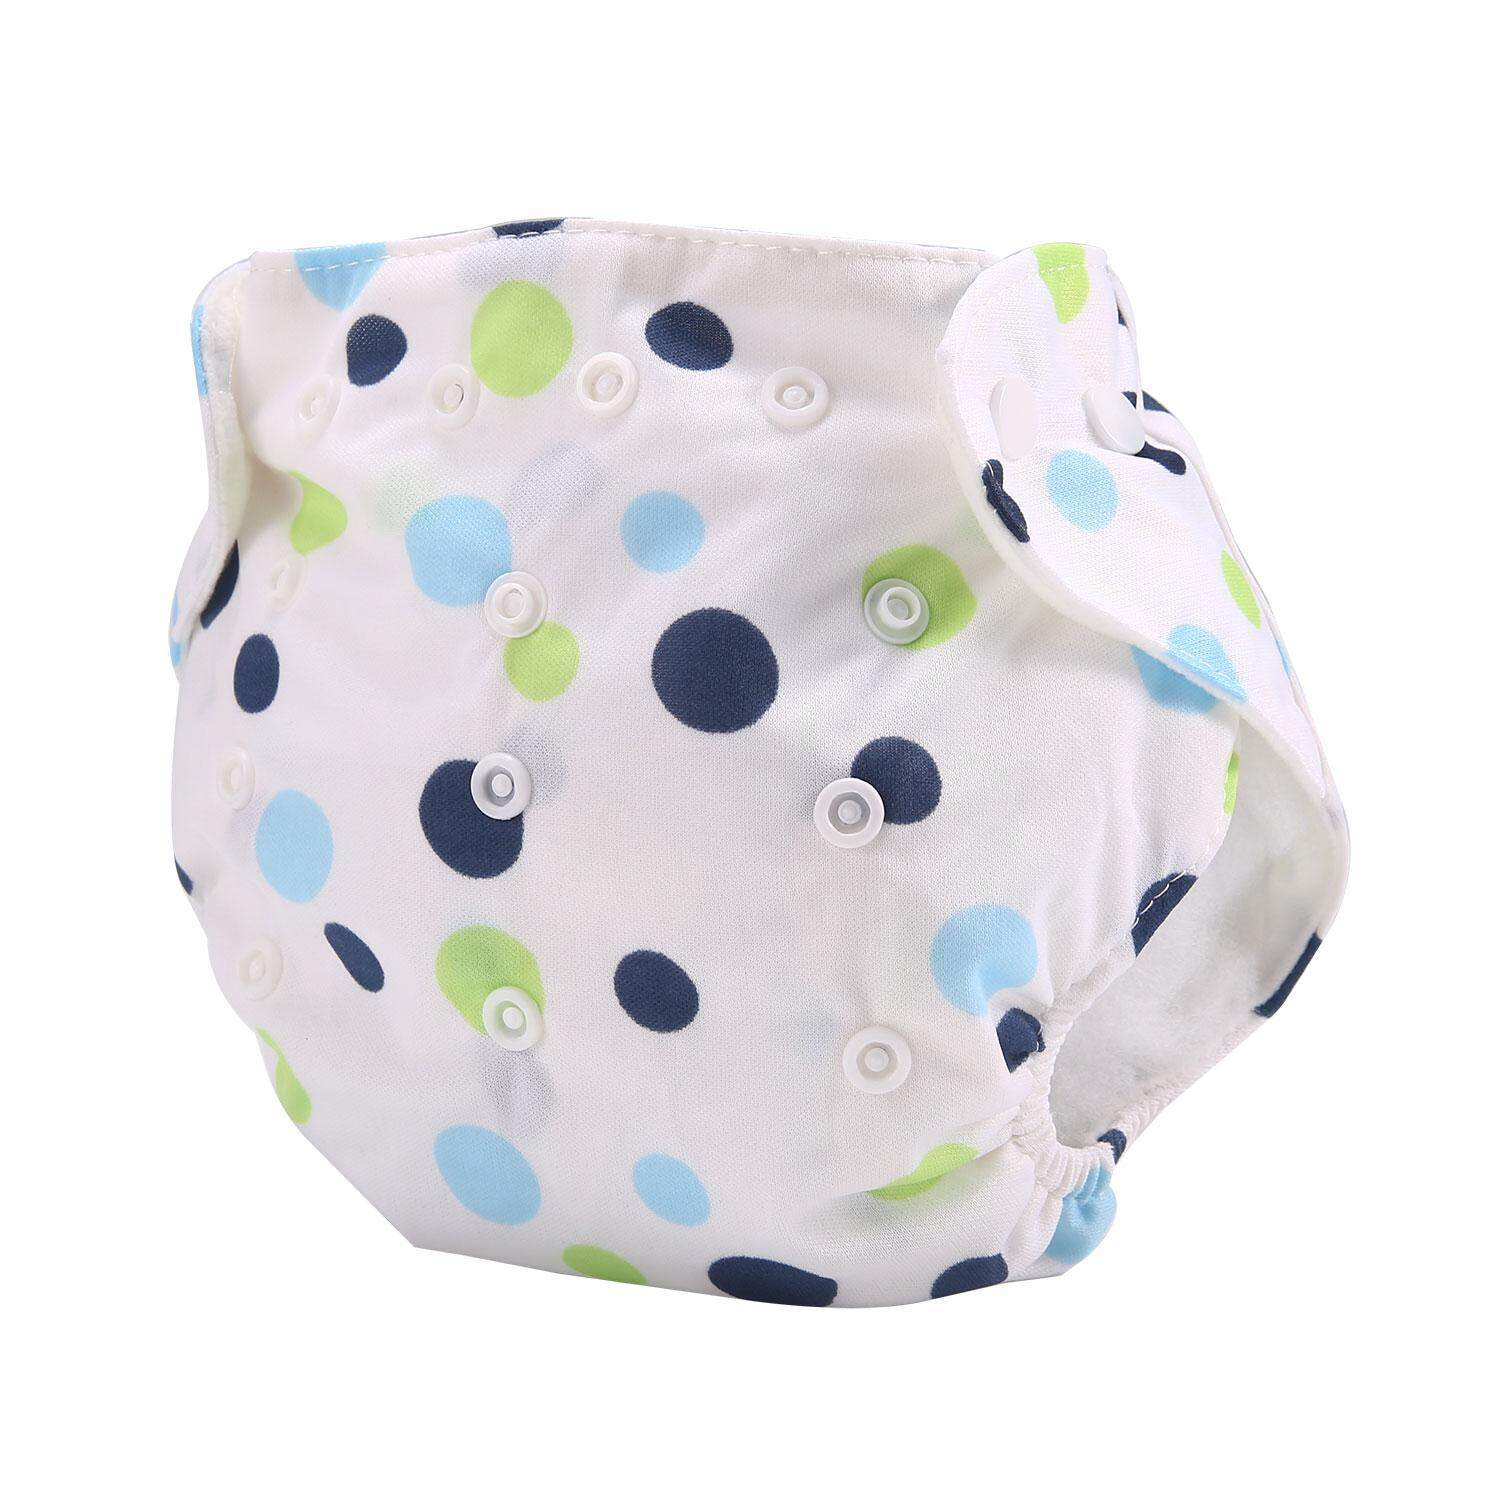 Cloth Diapers Accessories Buy At Sweety Popok Bayi Comfort Gold Tape M 48 Orzbuy Baby Swim Diaper Reusable Pants Adjustable For Infant Toddler